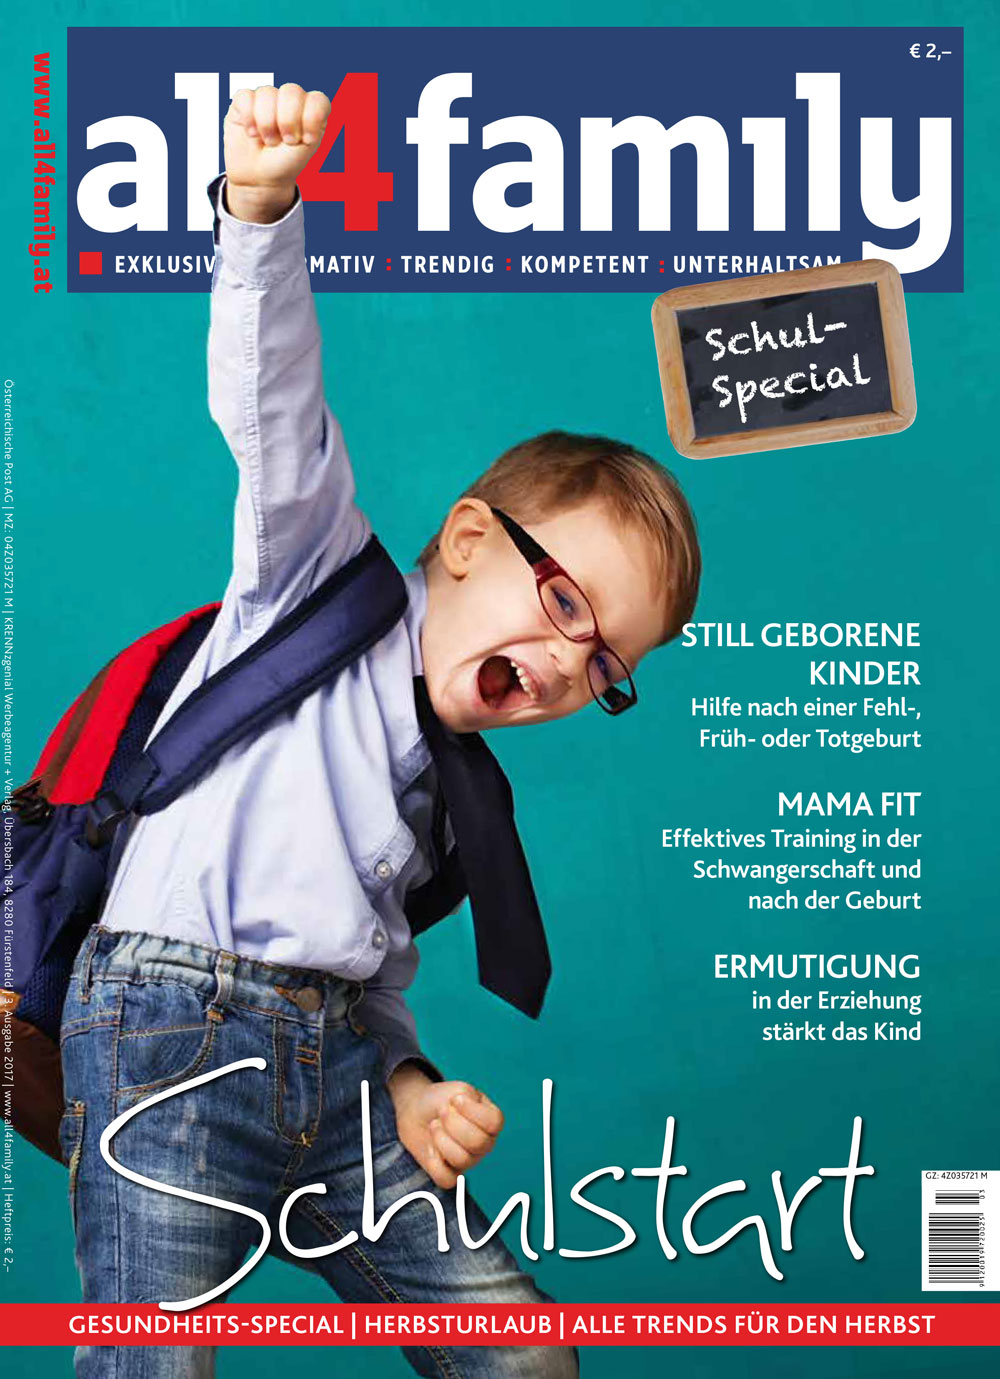 Mamafit als Coverstory im aktuellen All4Family!